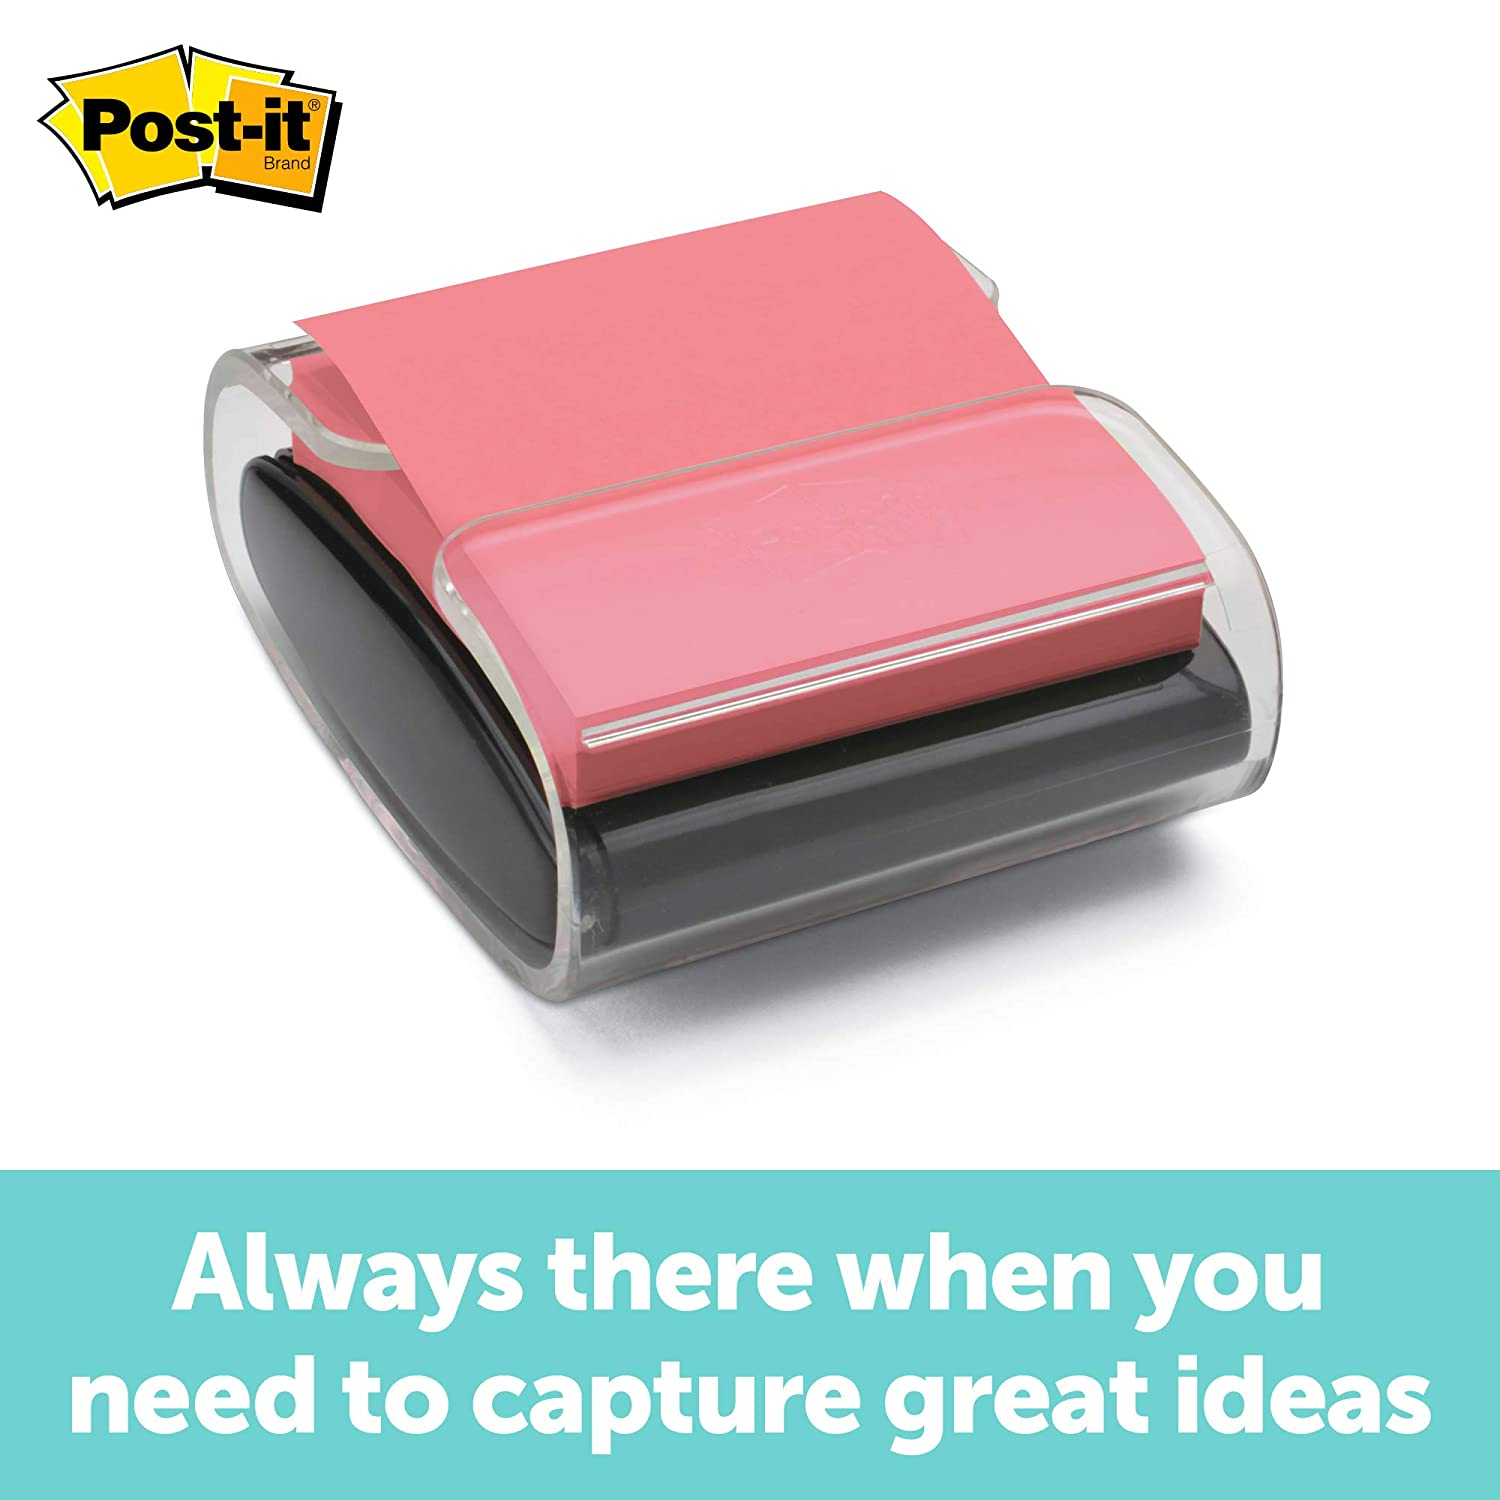 Post-it Pop-up Note Dispenser, Black, Designed to work with Post-it Pop-up Notes, Fits 3 in. x 3 in. Notes, 1 Dispenser/Pack, (WD330-BK)